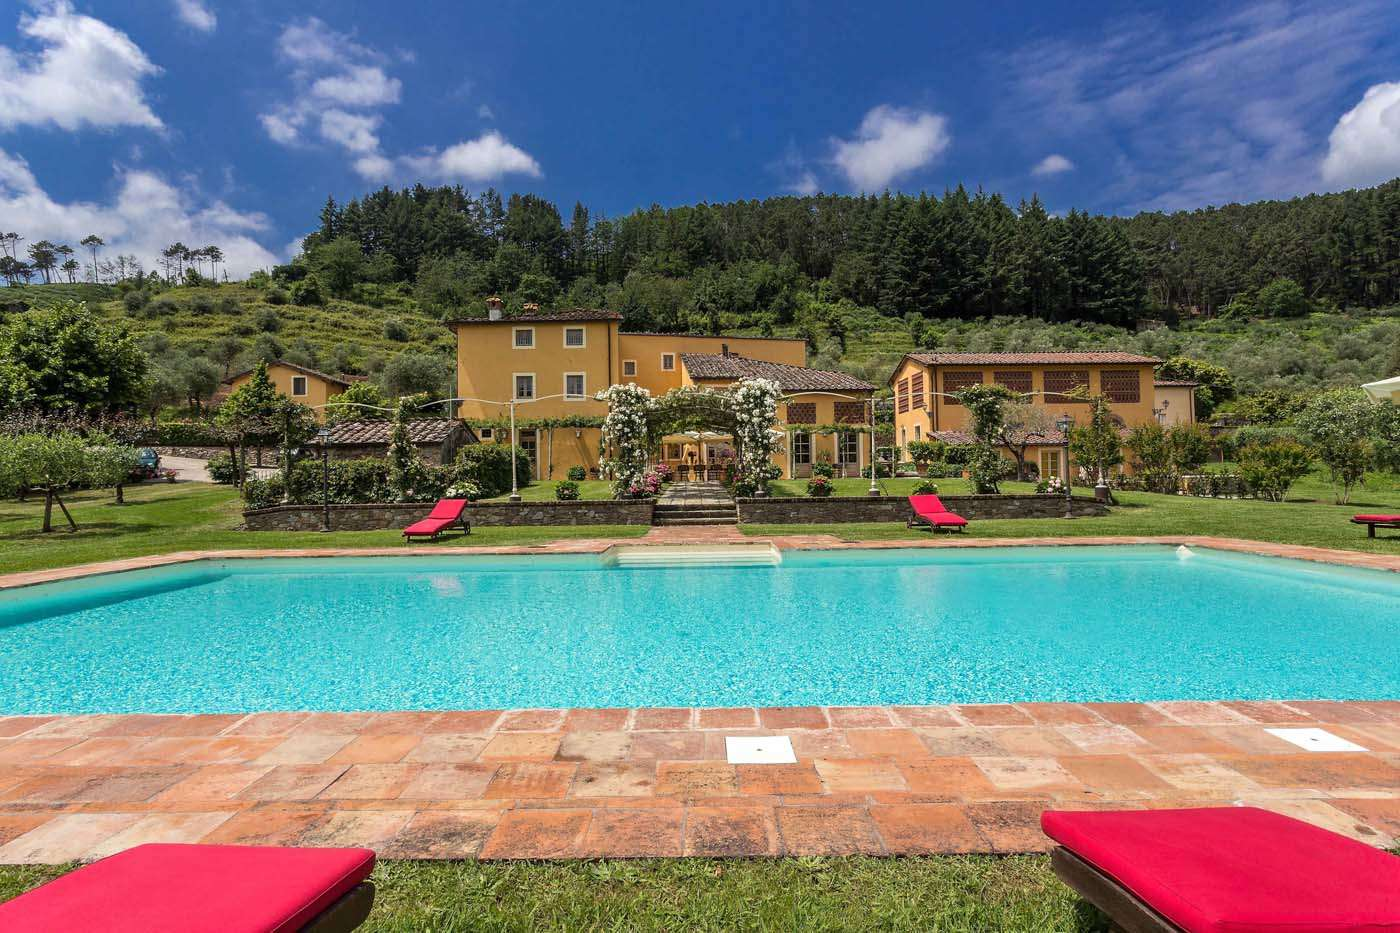 Luxury vacation rentals europe - Italy - Tuscany - Lucca - Fattoressa - Image 1/19